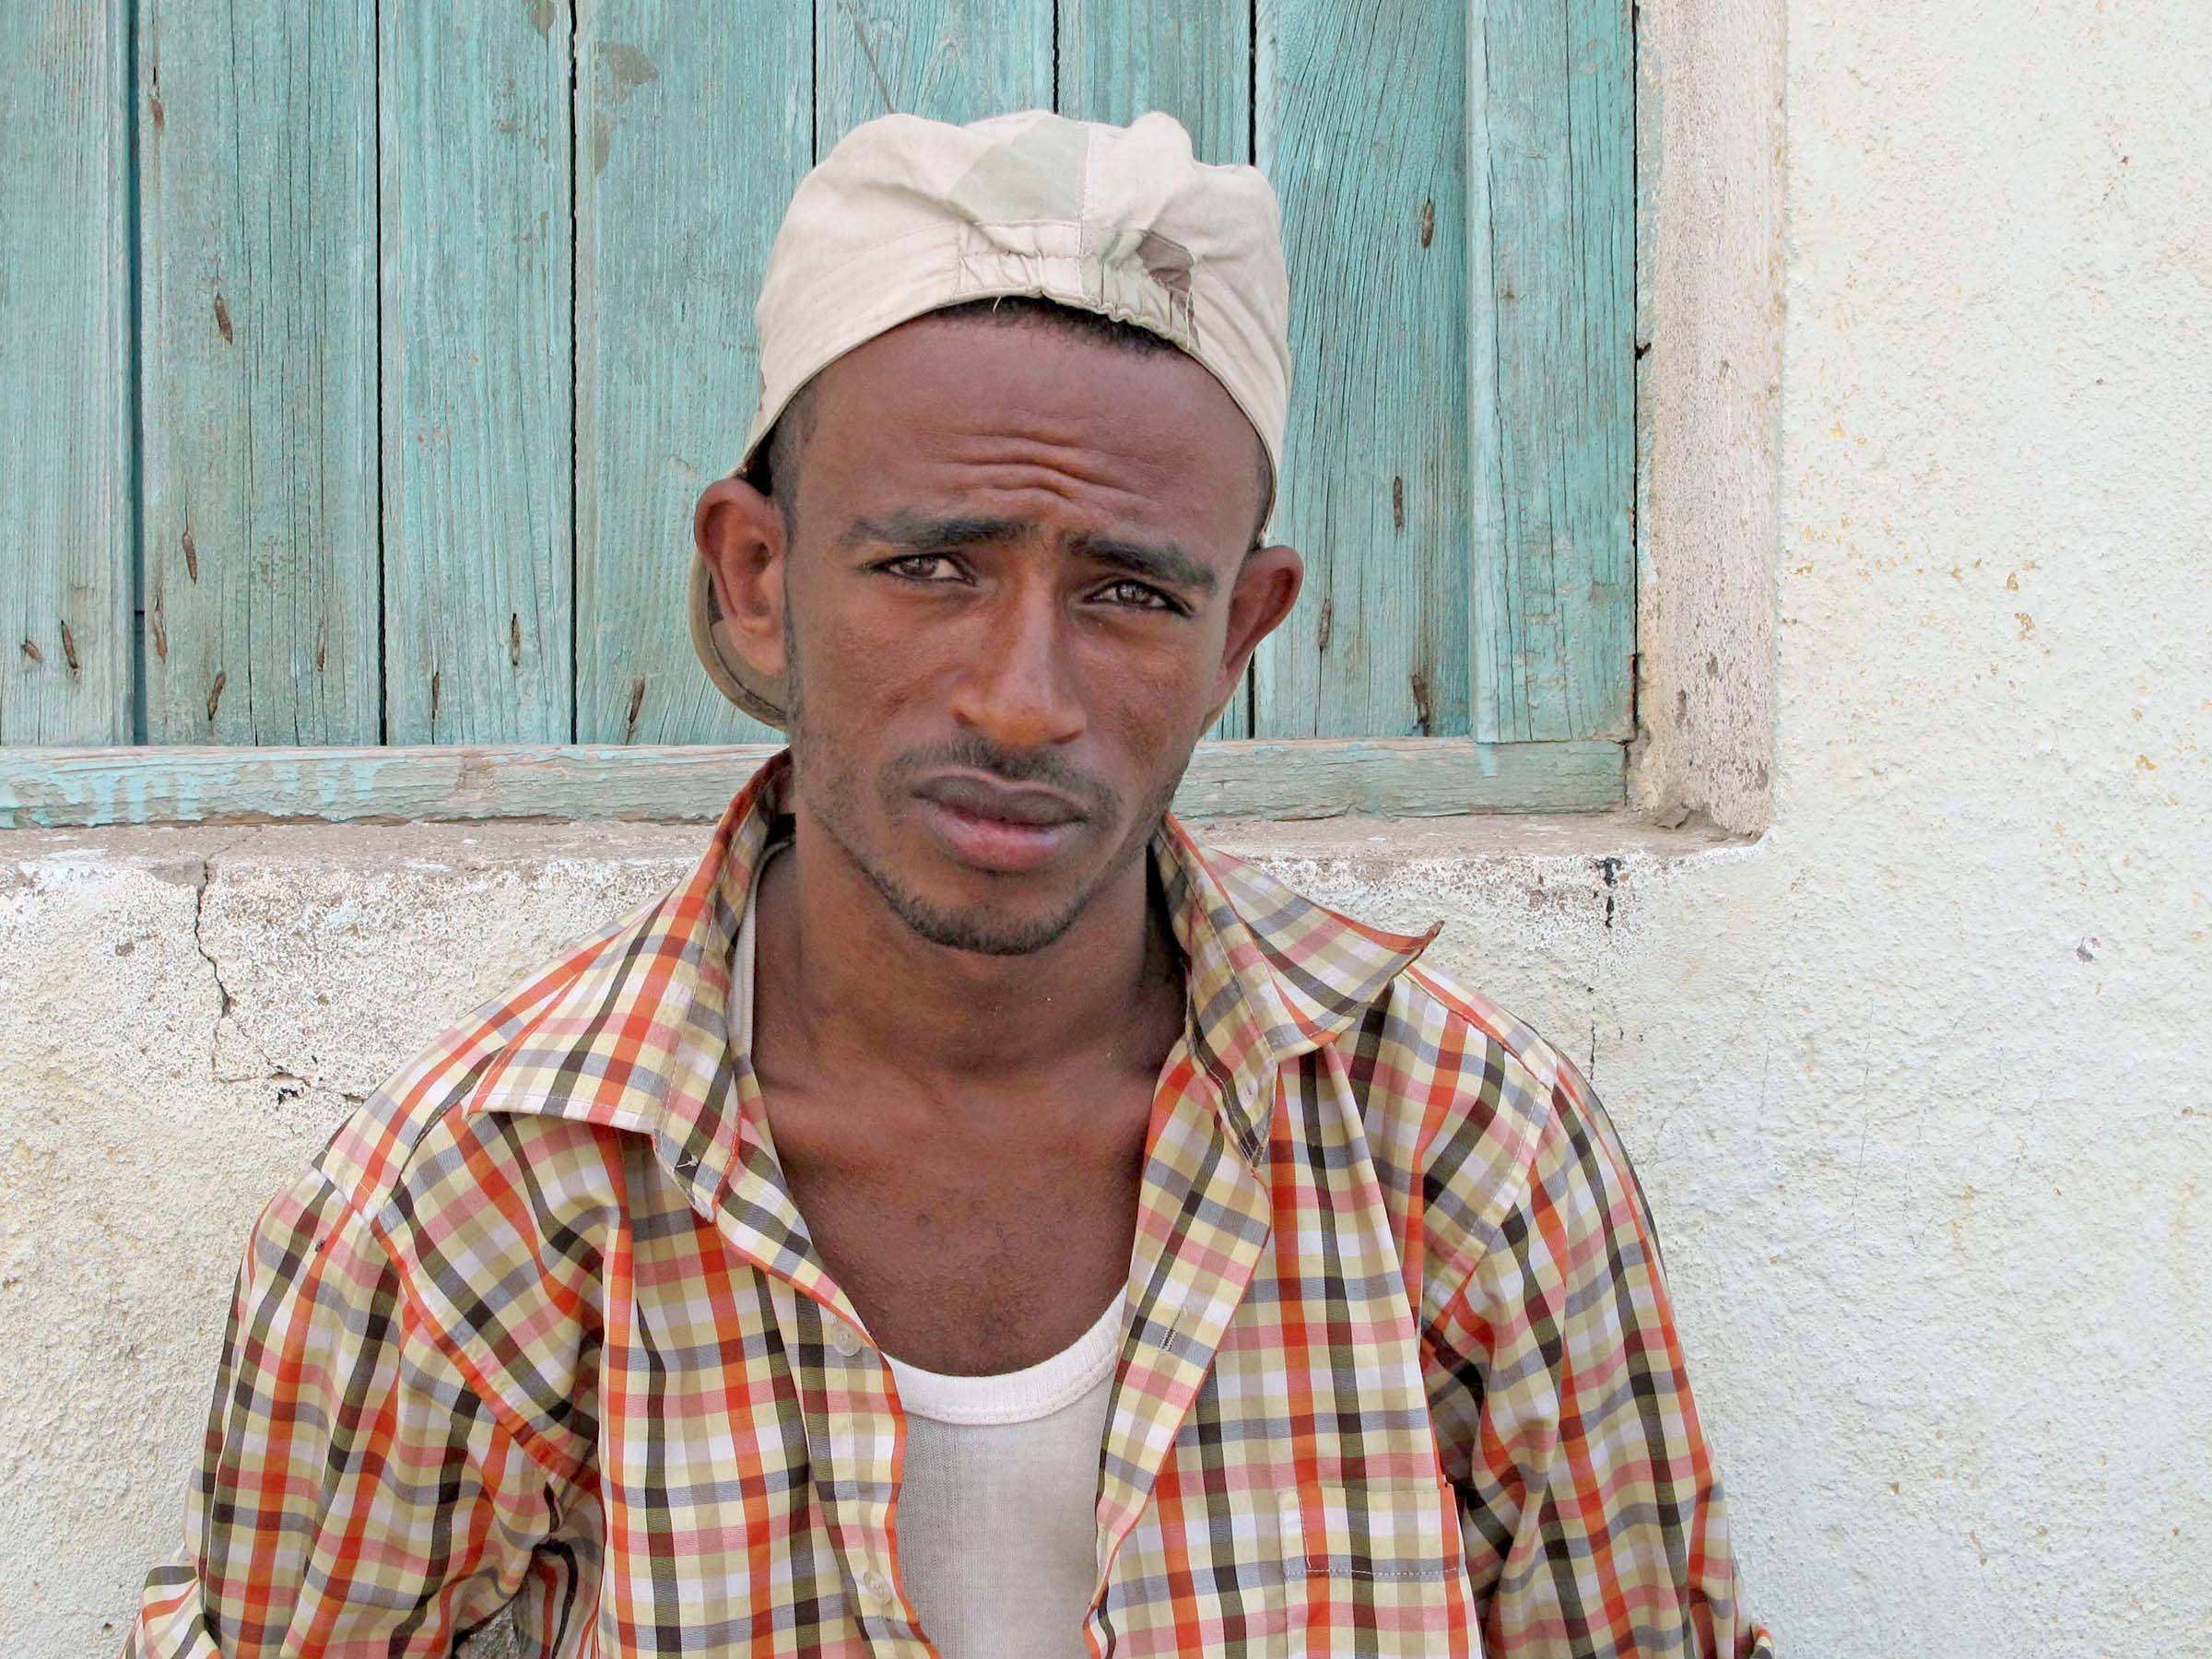 Ibsa Mohamad, a student from Ethiopia's Oromia region, paid a smuggler in Djiboutiville to organise his passage to Yemen, but now has no contact with him and no money to either continue his journey or return home